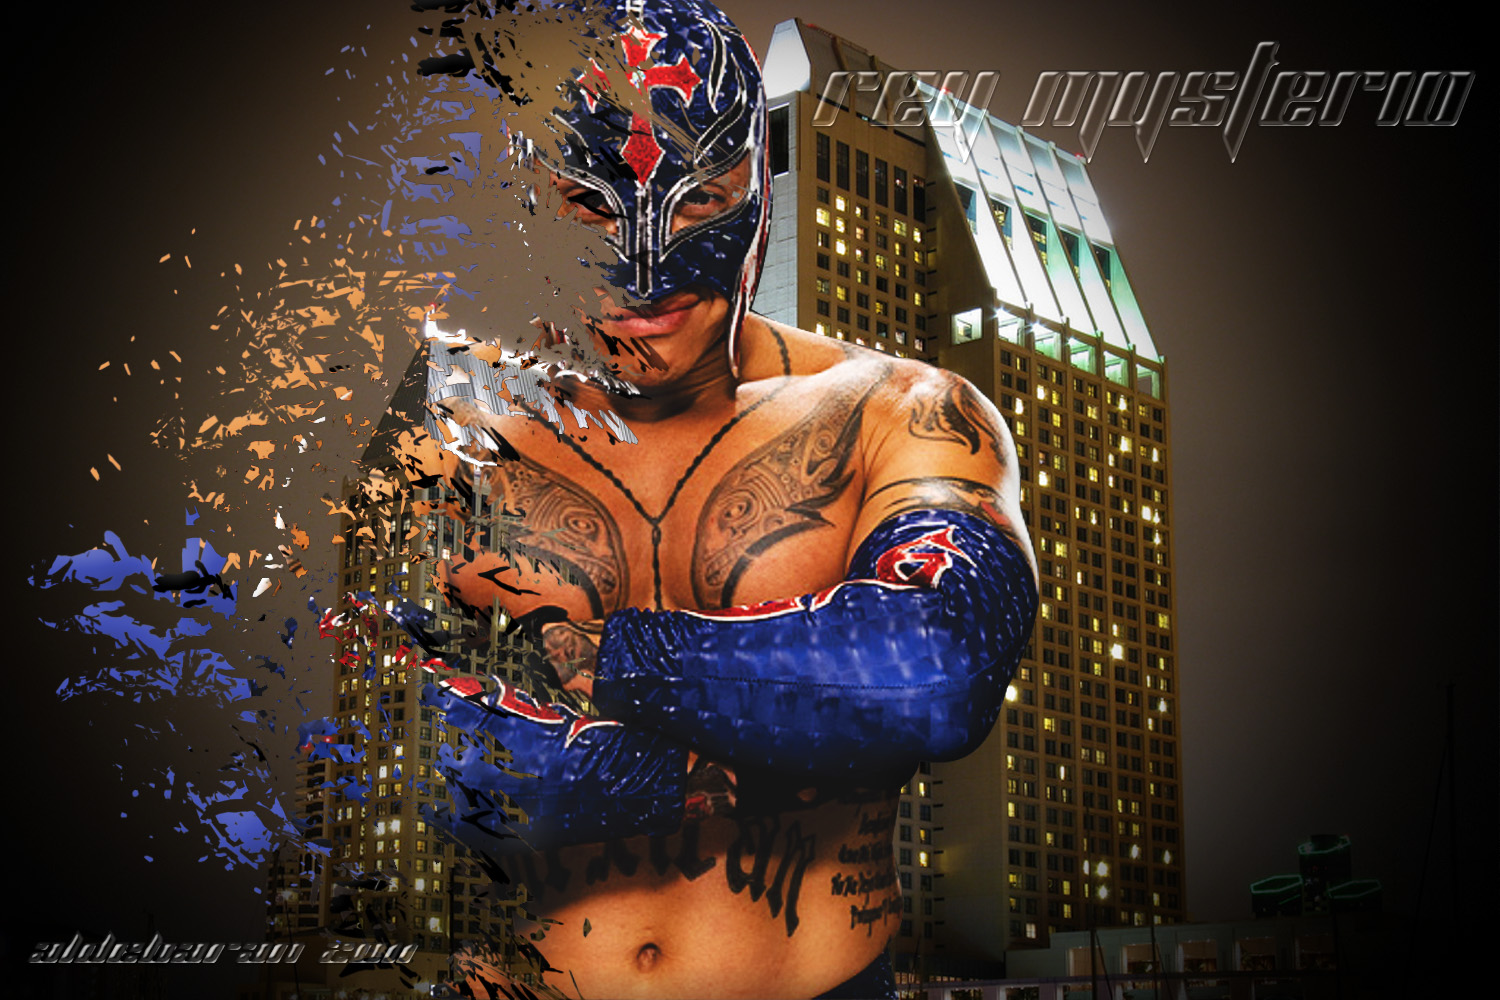 Free Download All Sports Players Wwe Rey Mysterio 619 New Hd